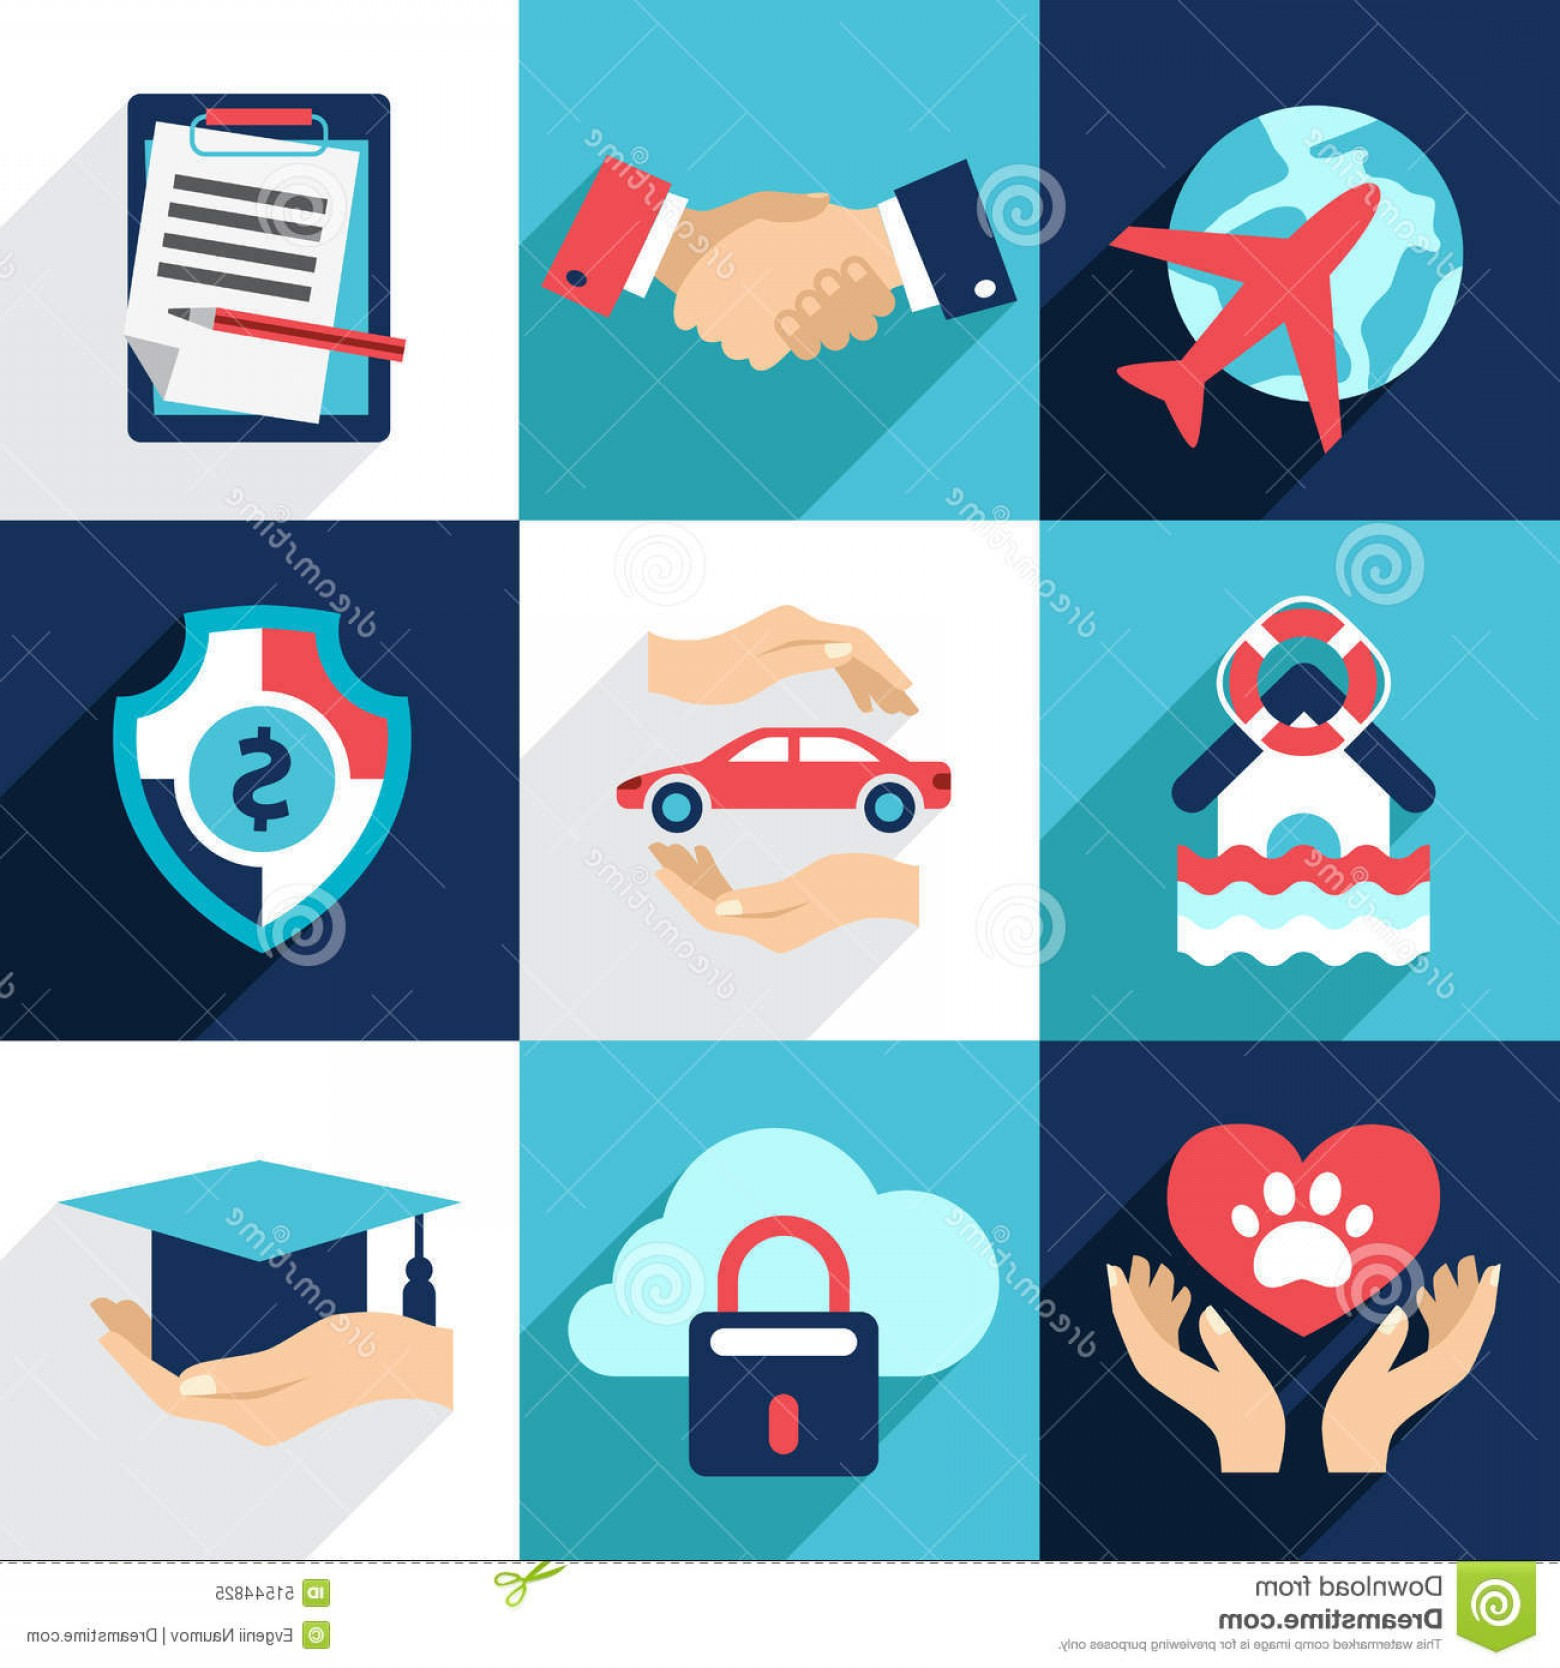 Vector Insurance: Stock Illustration Insurance Asset Protection Security Flat Style Icon Vector Image